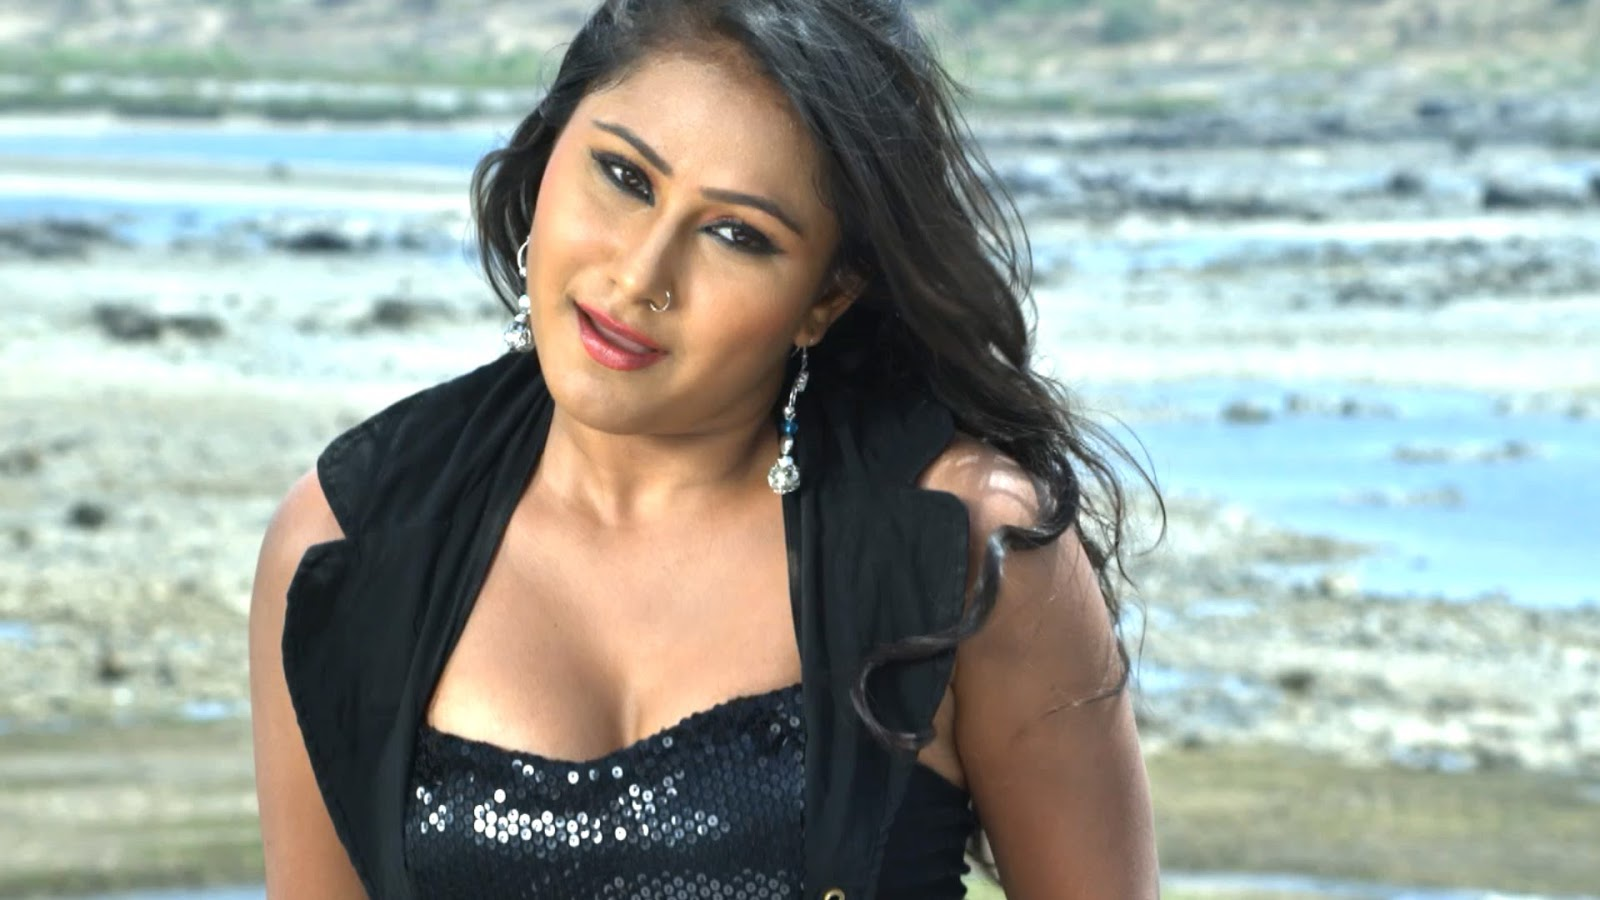 actresses nude in upcoming movies